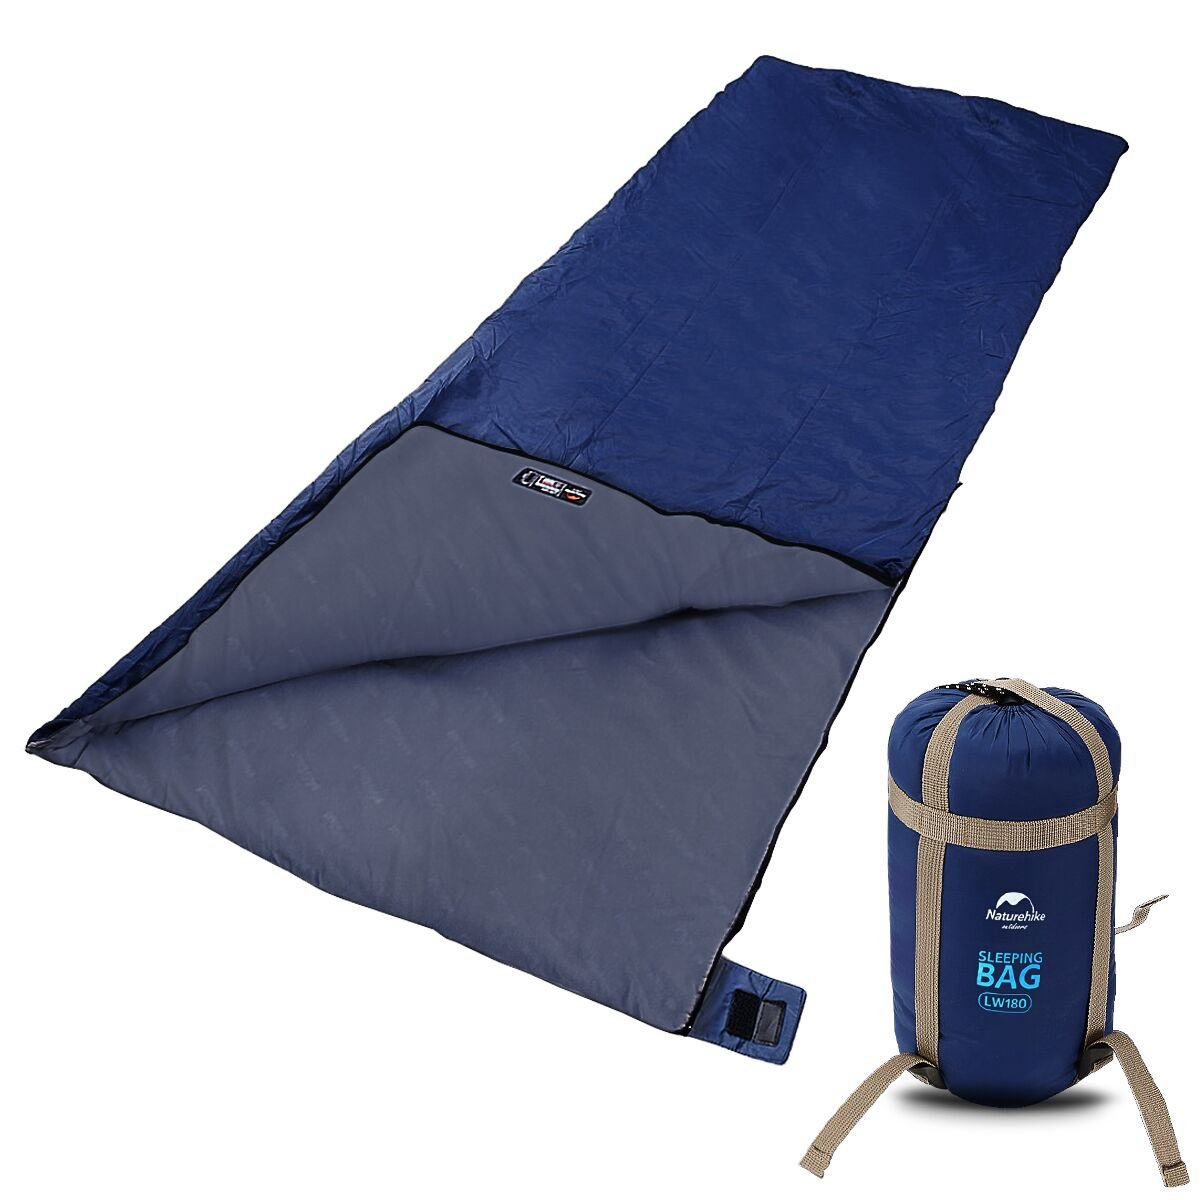 Comfort With Compression Sack Great For 4 Season Traveling Waterproof YZXLI Sleeping Bag /& Outdoor Activities. Envelope Lightweight Portable Hiking Camping Hiking Envelope Sleeping Bag Multifunctional Camping Sleeping Bag for Spring SINGLE